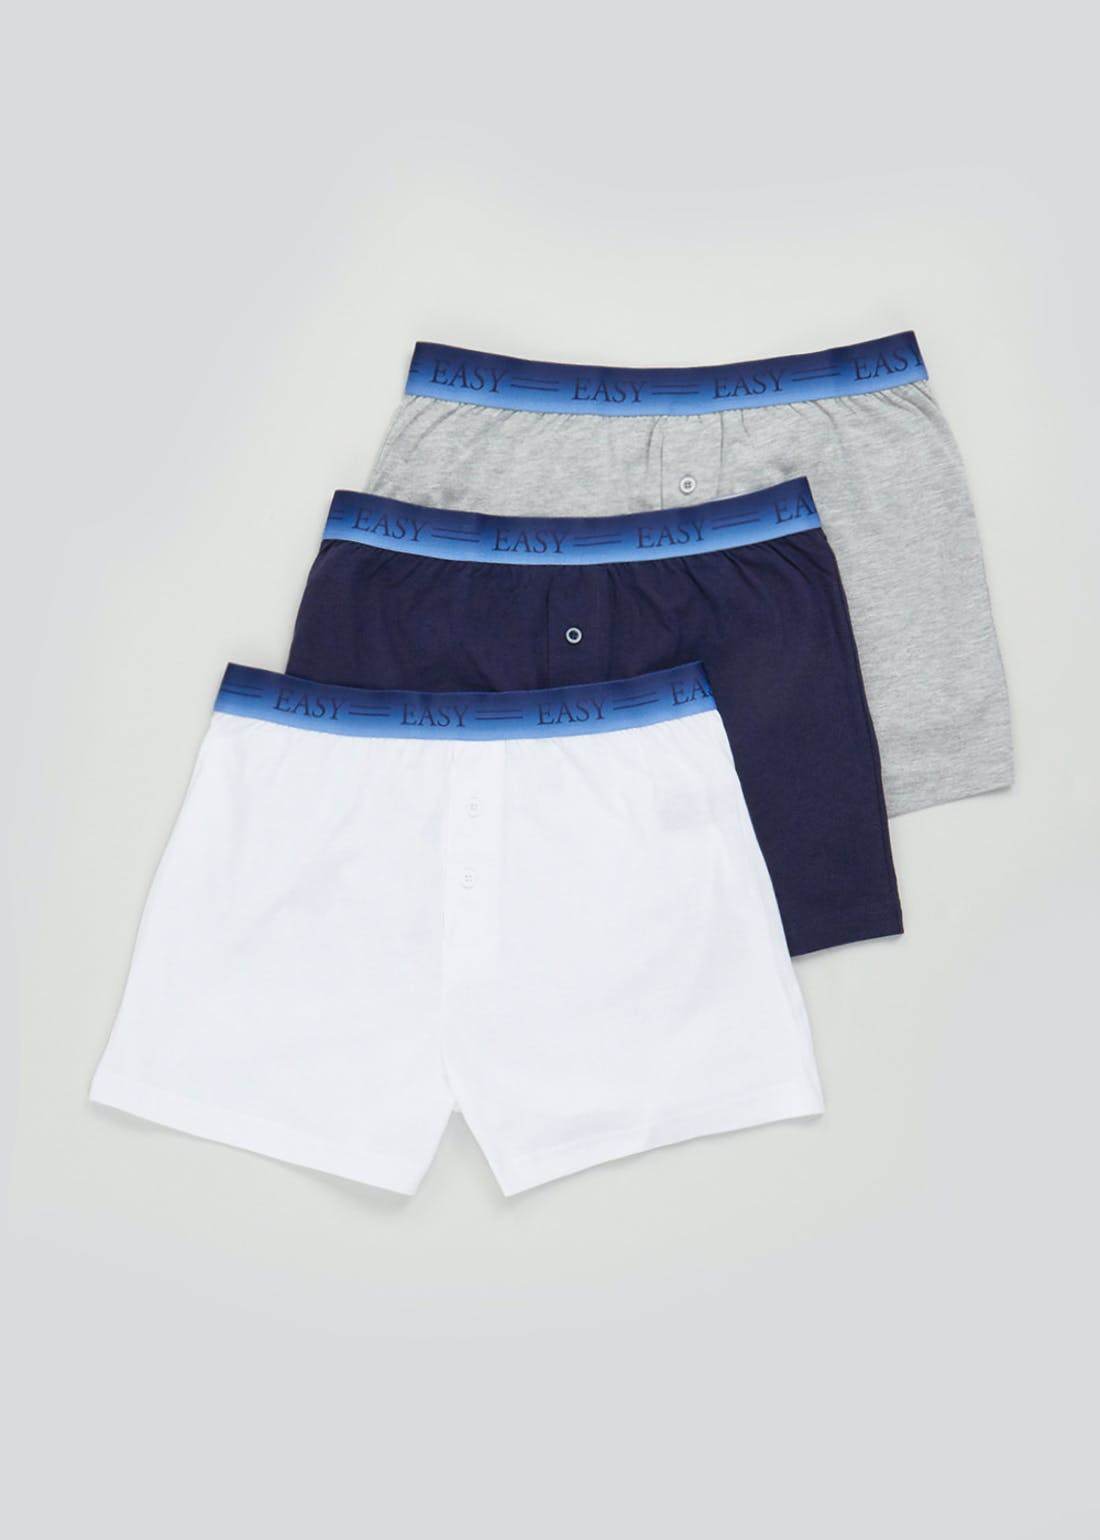 3 Pack Loose Fit Boxers